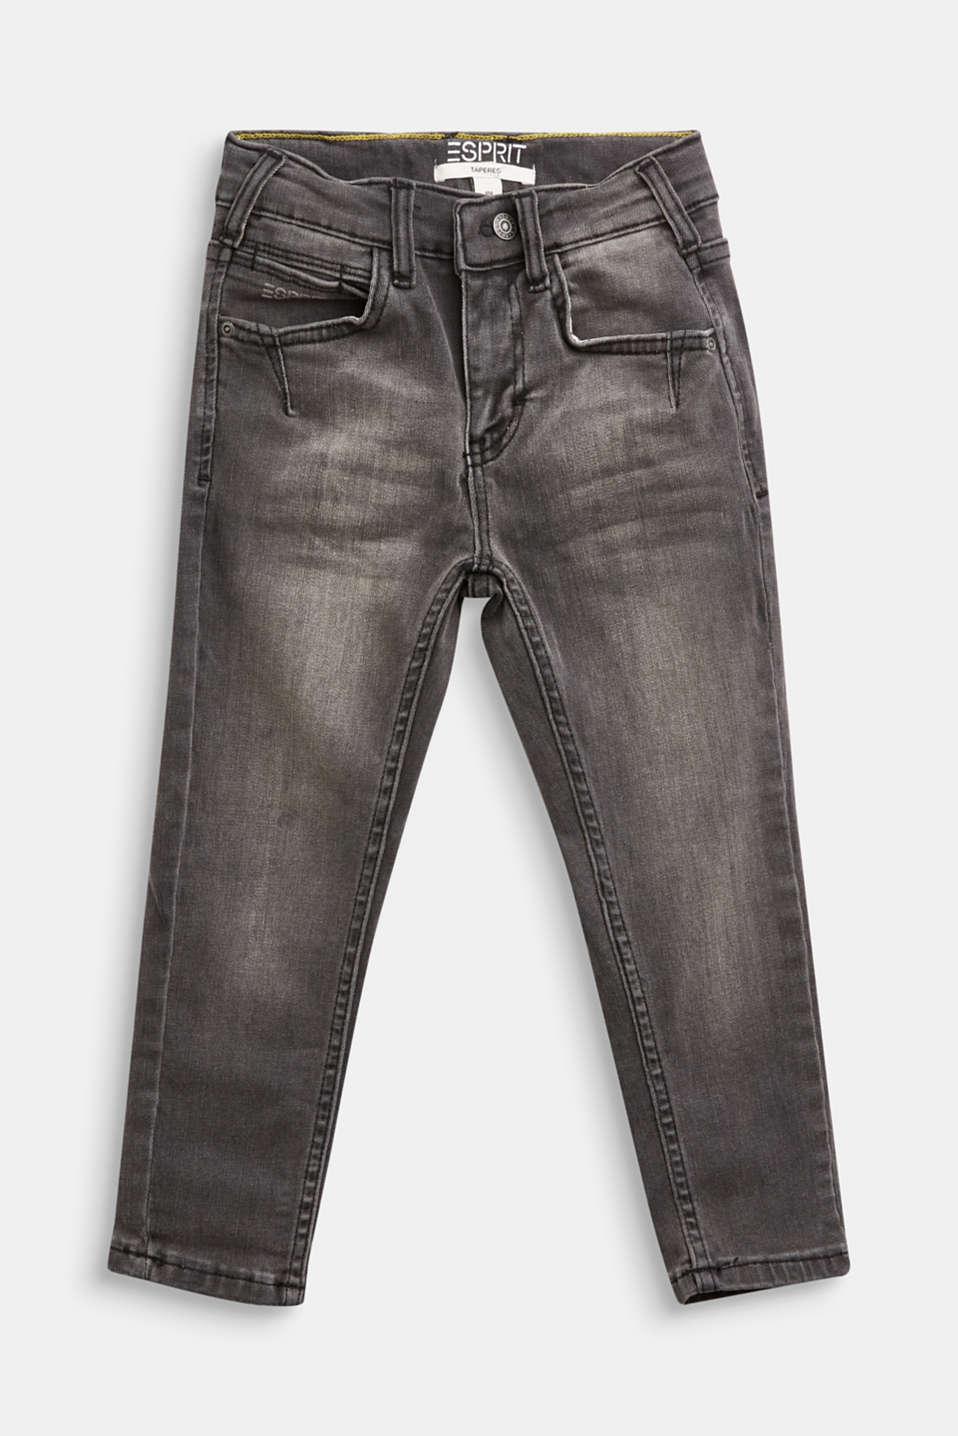 Esprit - Stretchjeans met used look en verstelbare band